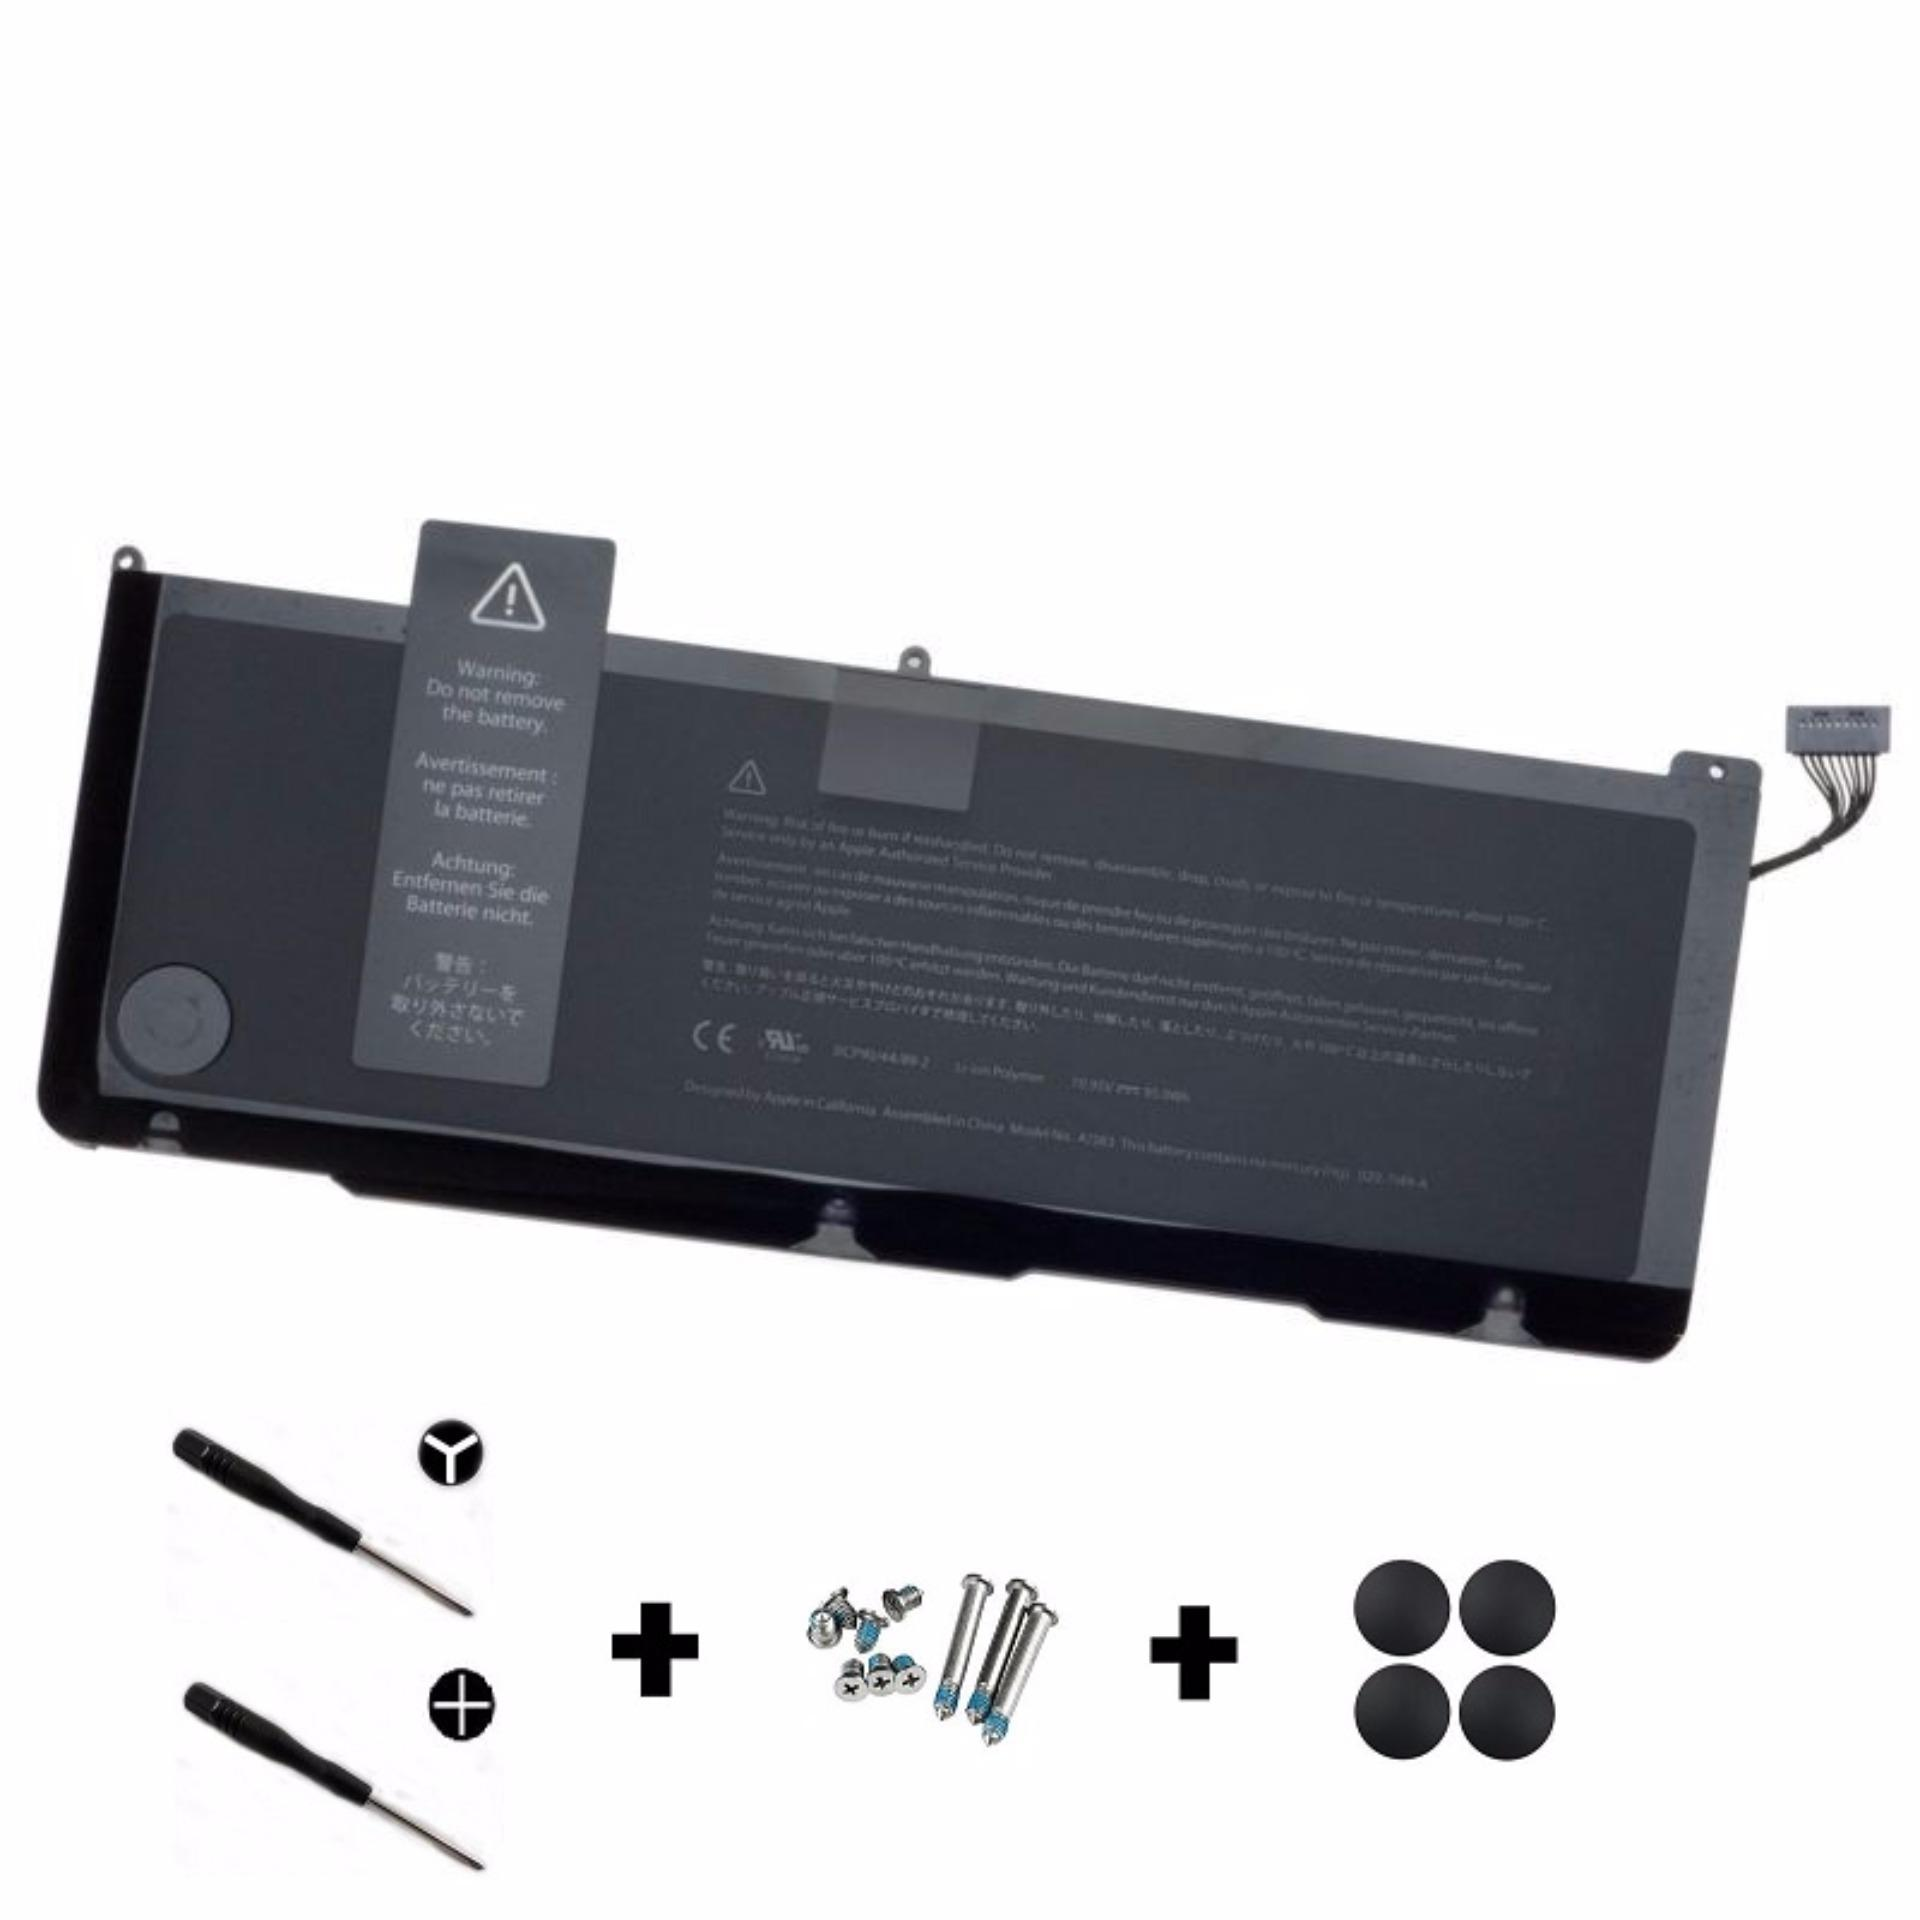 MacBook Pro 17-inch (Early 2011, Late 2011) Battery (A1383) + Pack Rubber Case Feet with Screws + Screwdriver